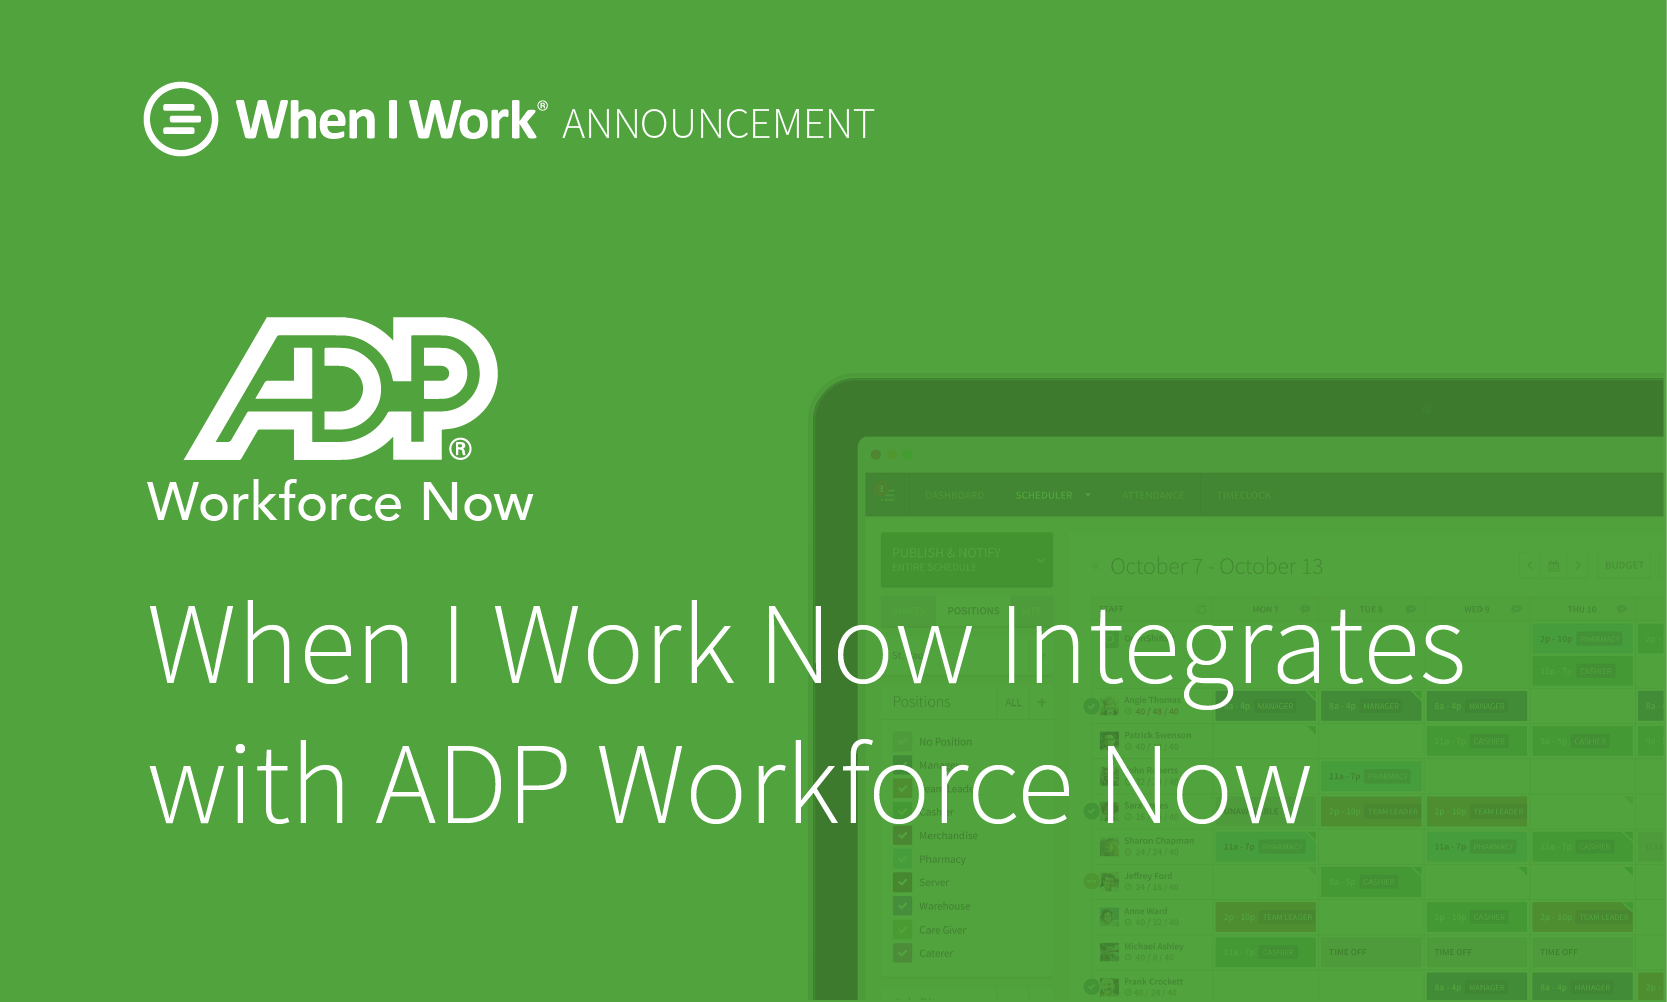 When I Work Now Integrates with ADP Workforce Now - When I Work